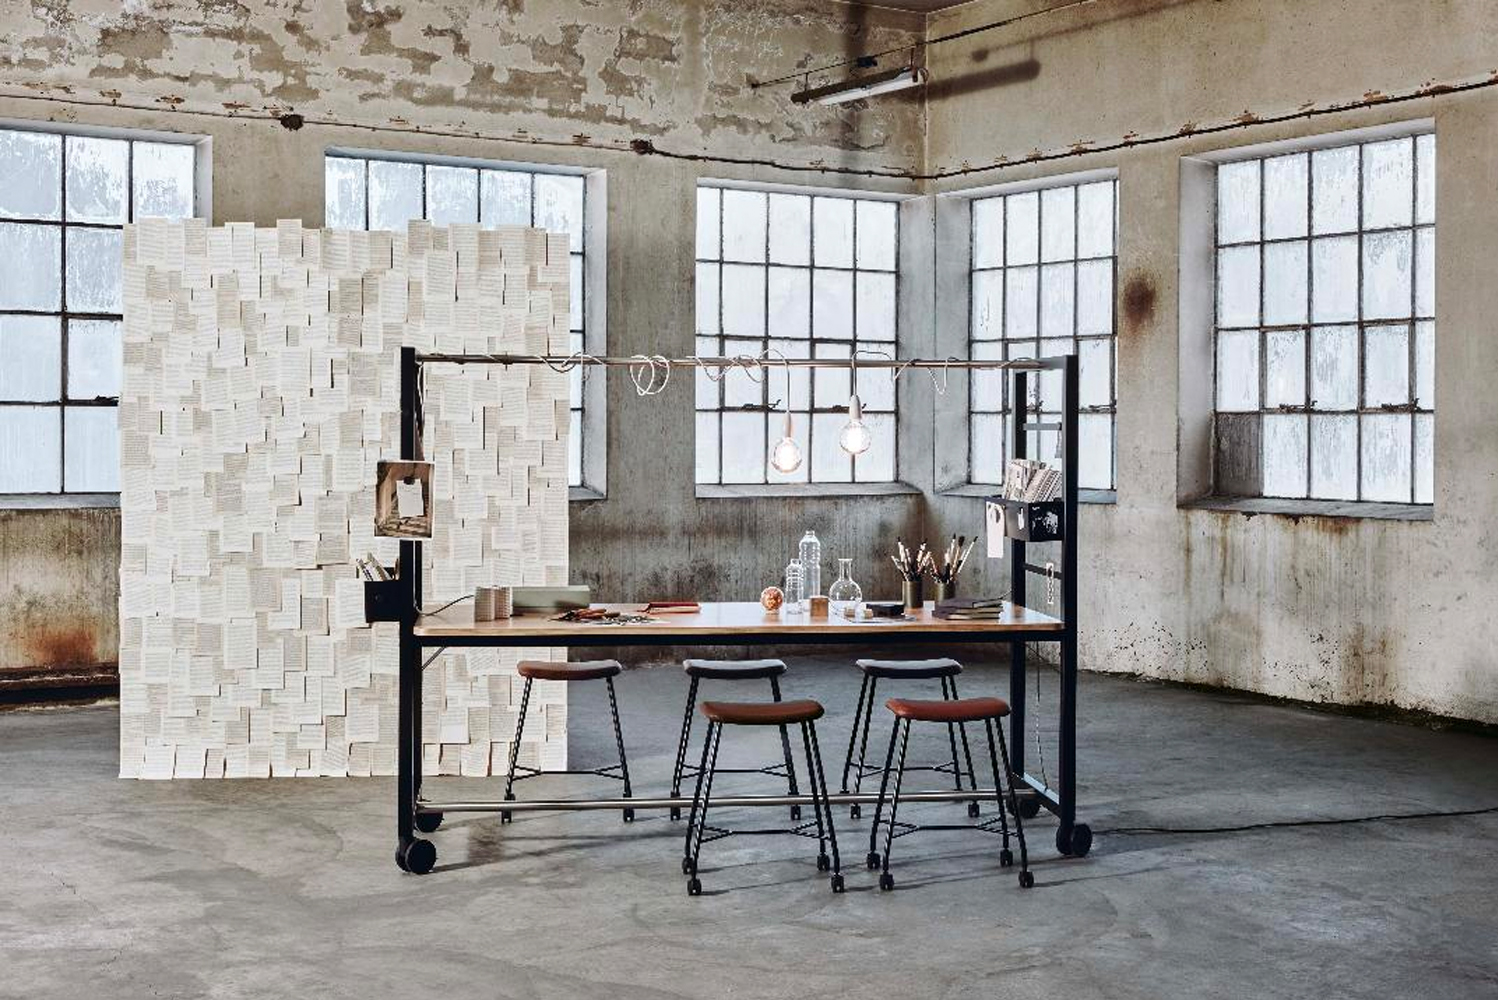 With partner brand Materia, Scandinavian Spaces introduced Vagabond and Motus to the North American market.